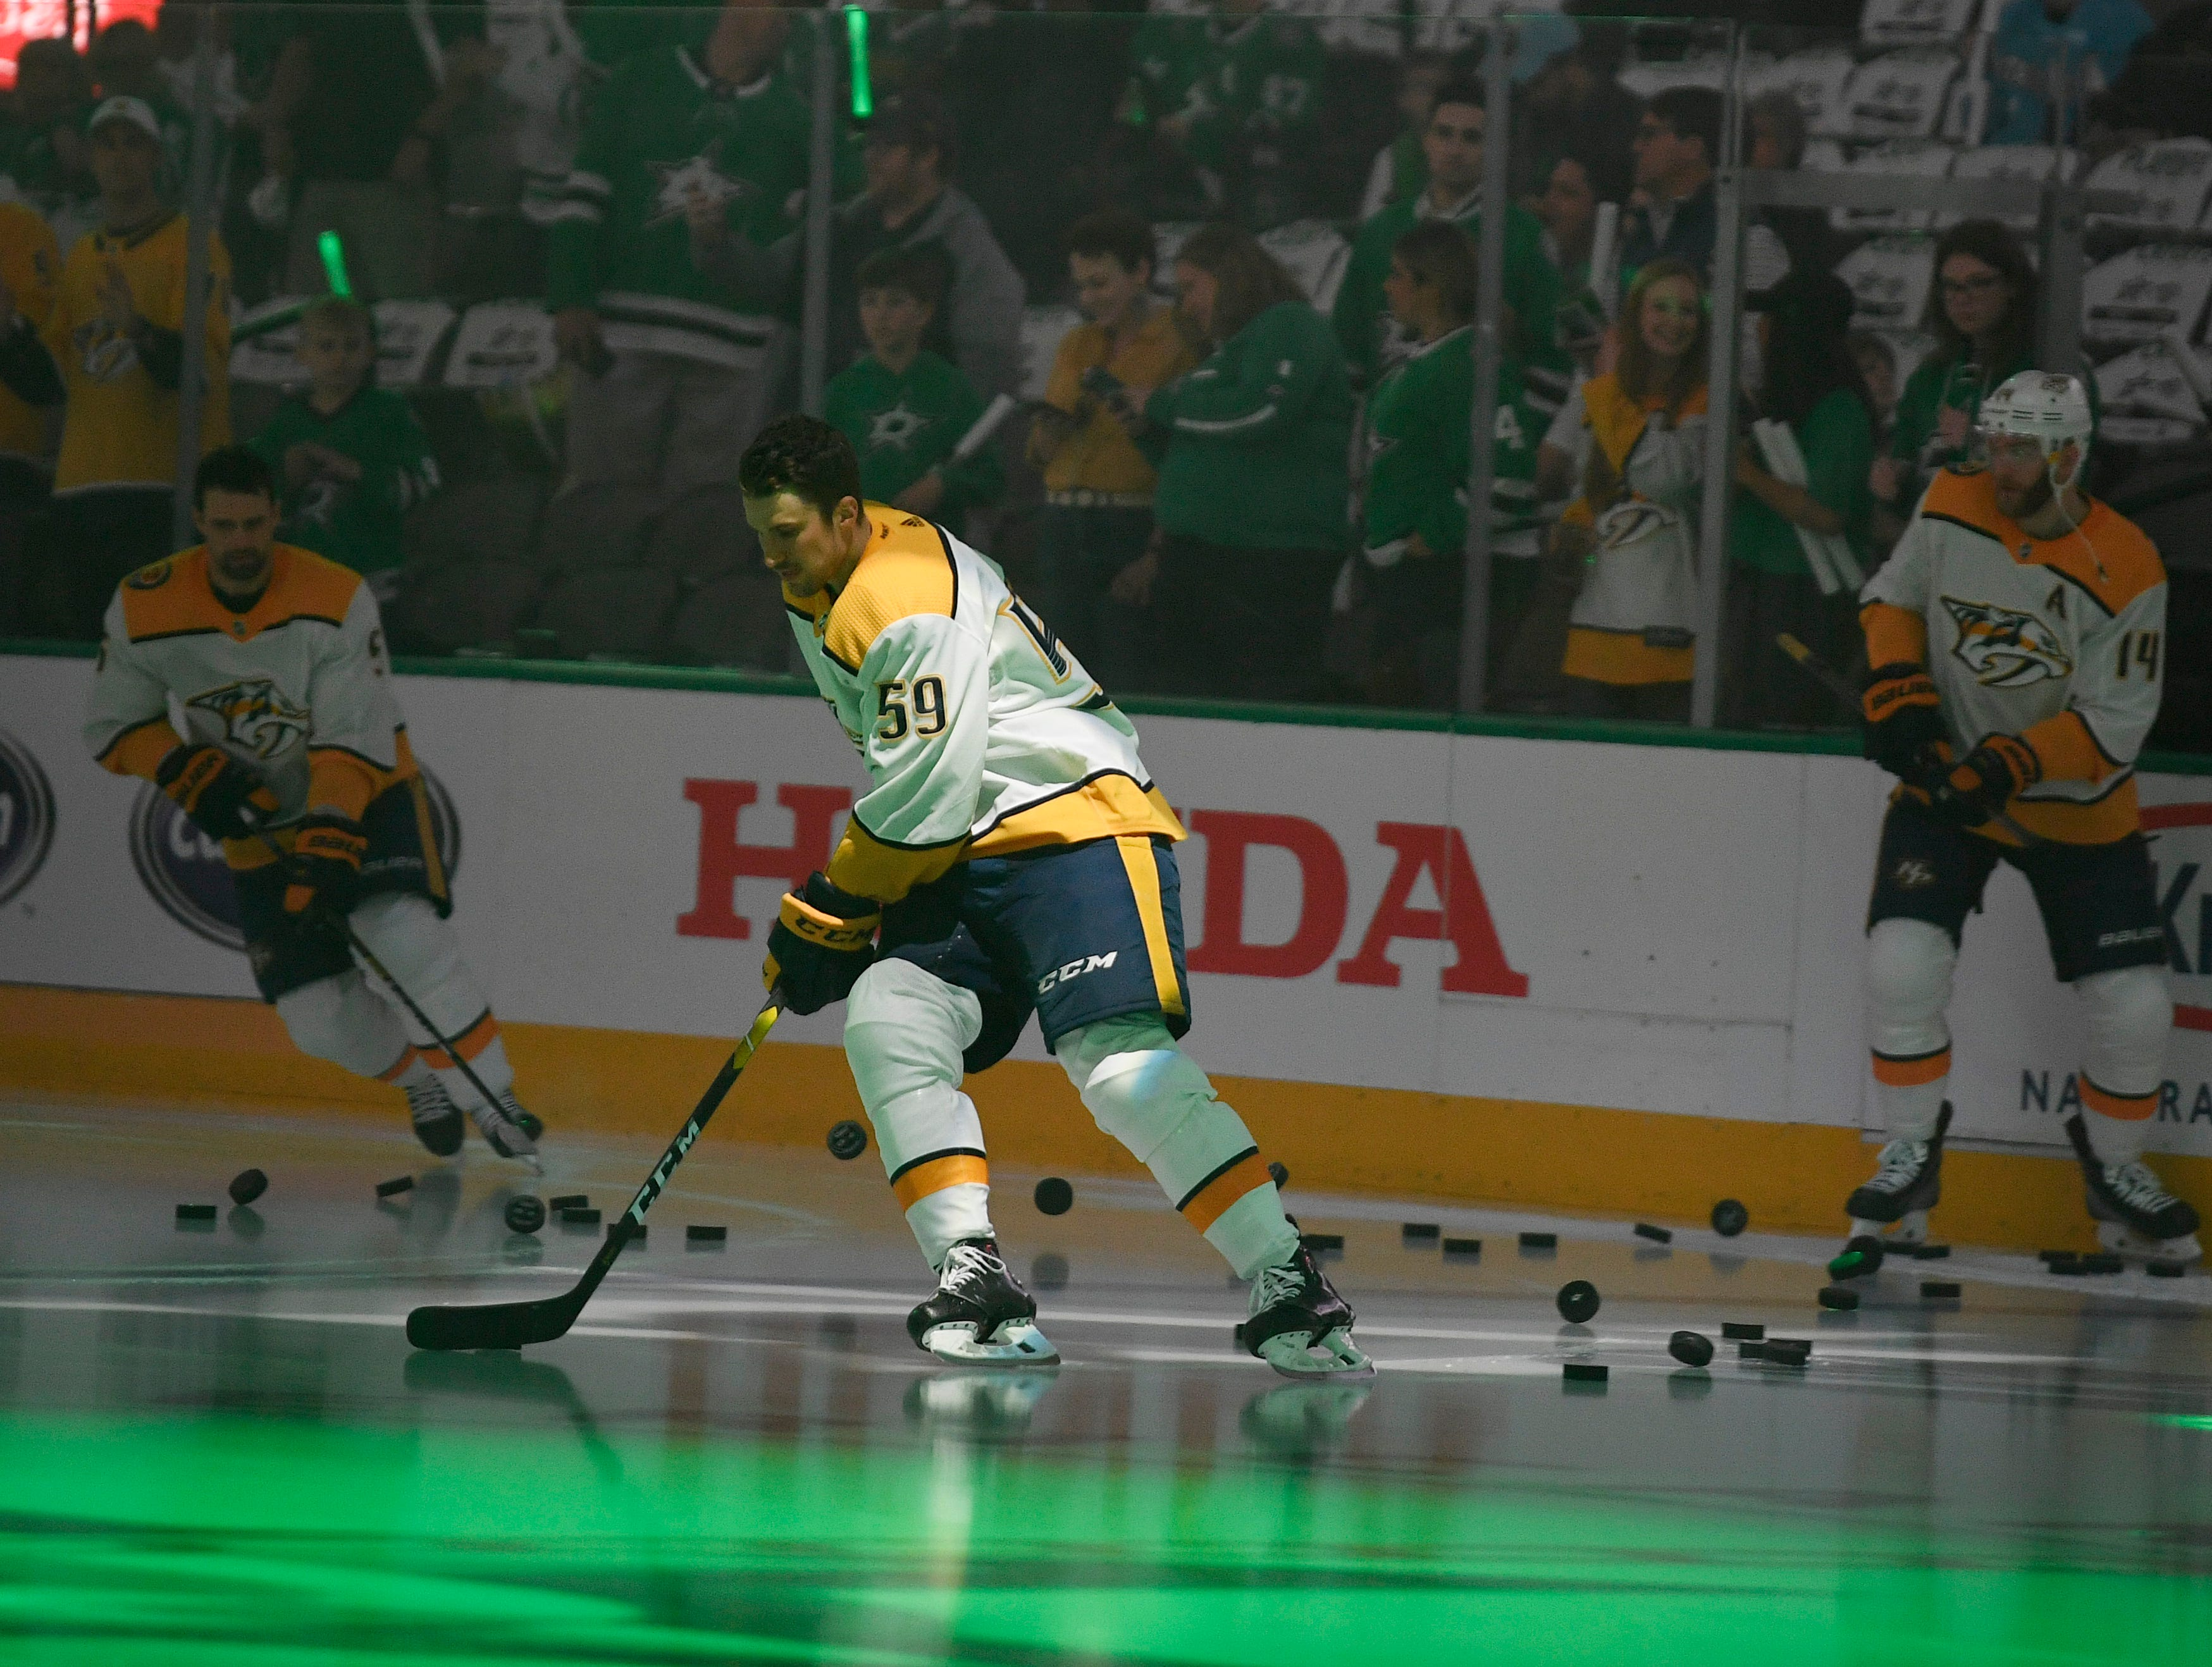 Predators players skate during warmups before the divisional semifinal game at the American Airlines Center in Dallas, Texas., Monday, April 15, 2019.